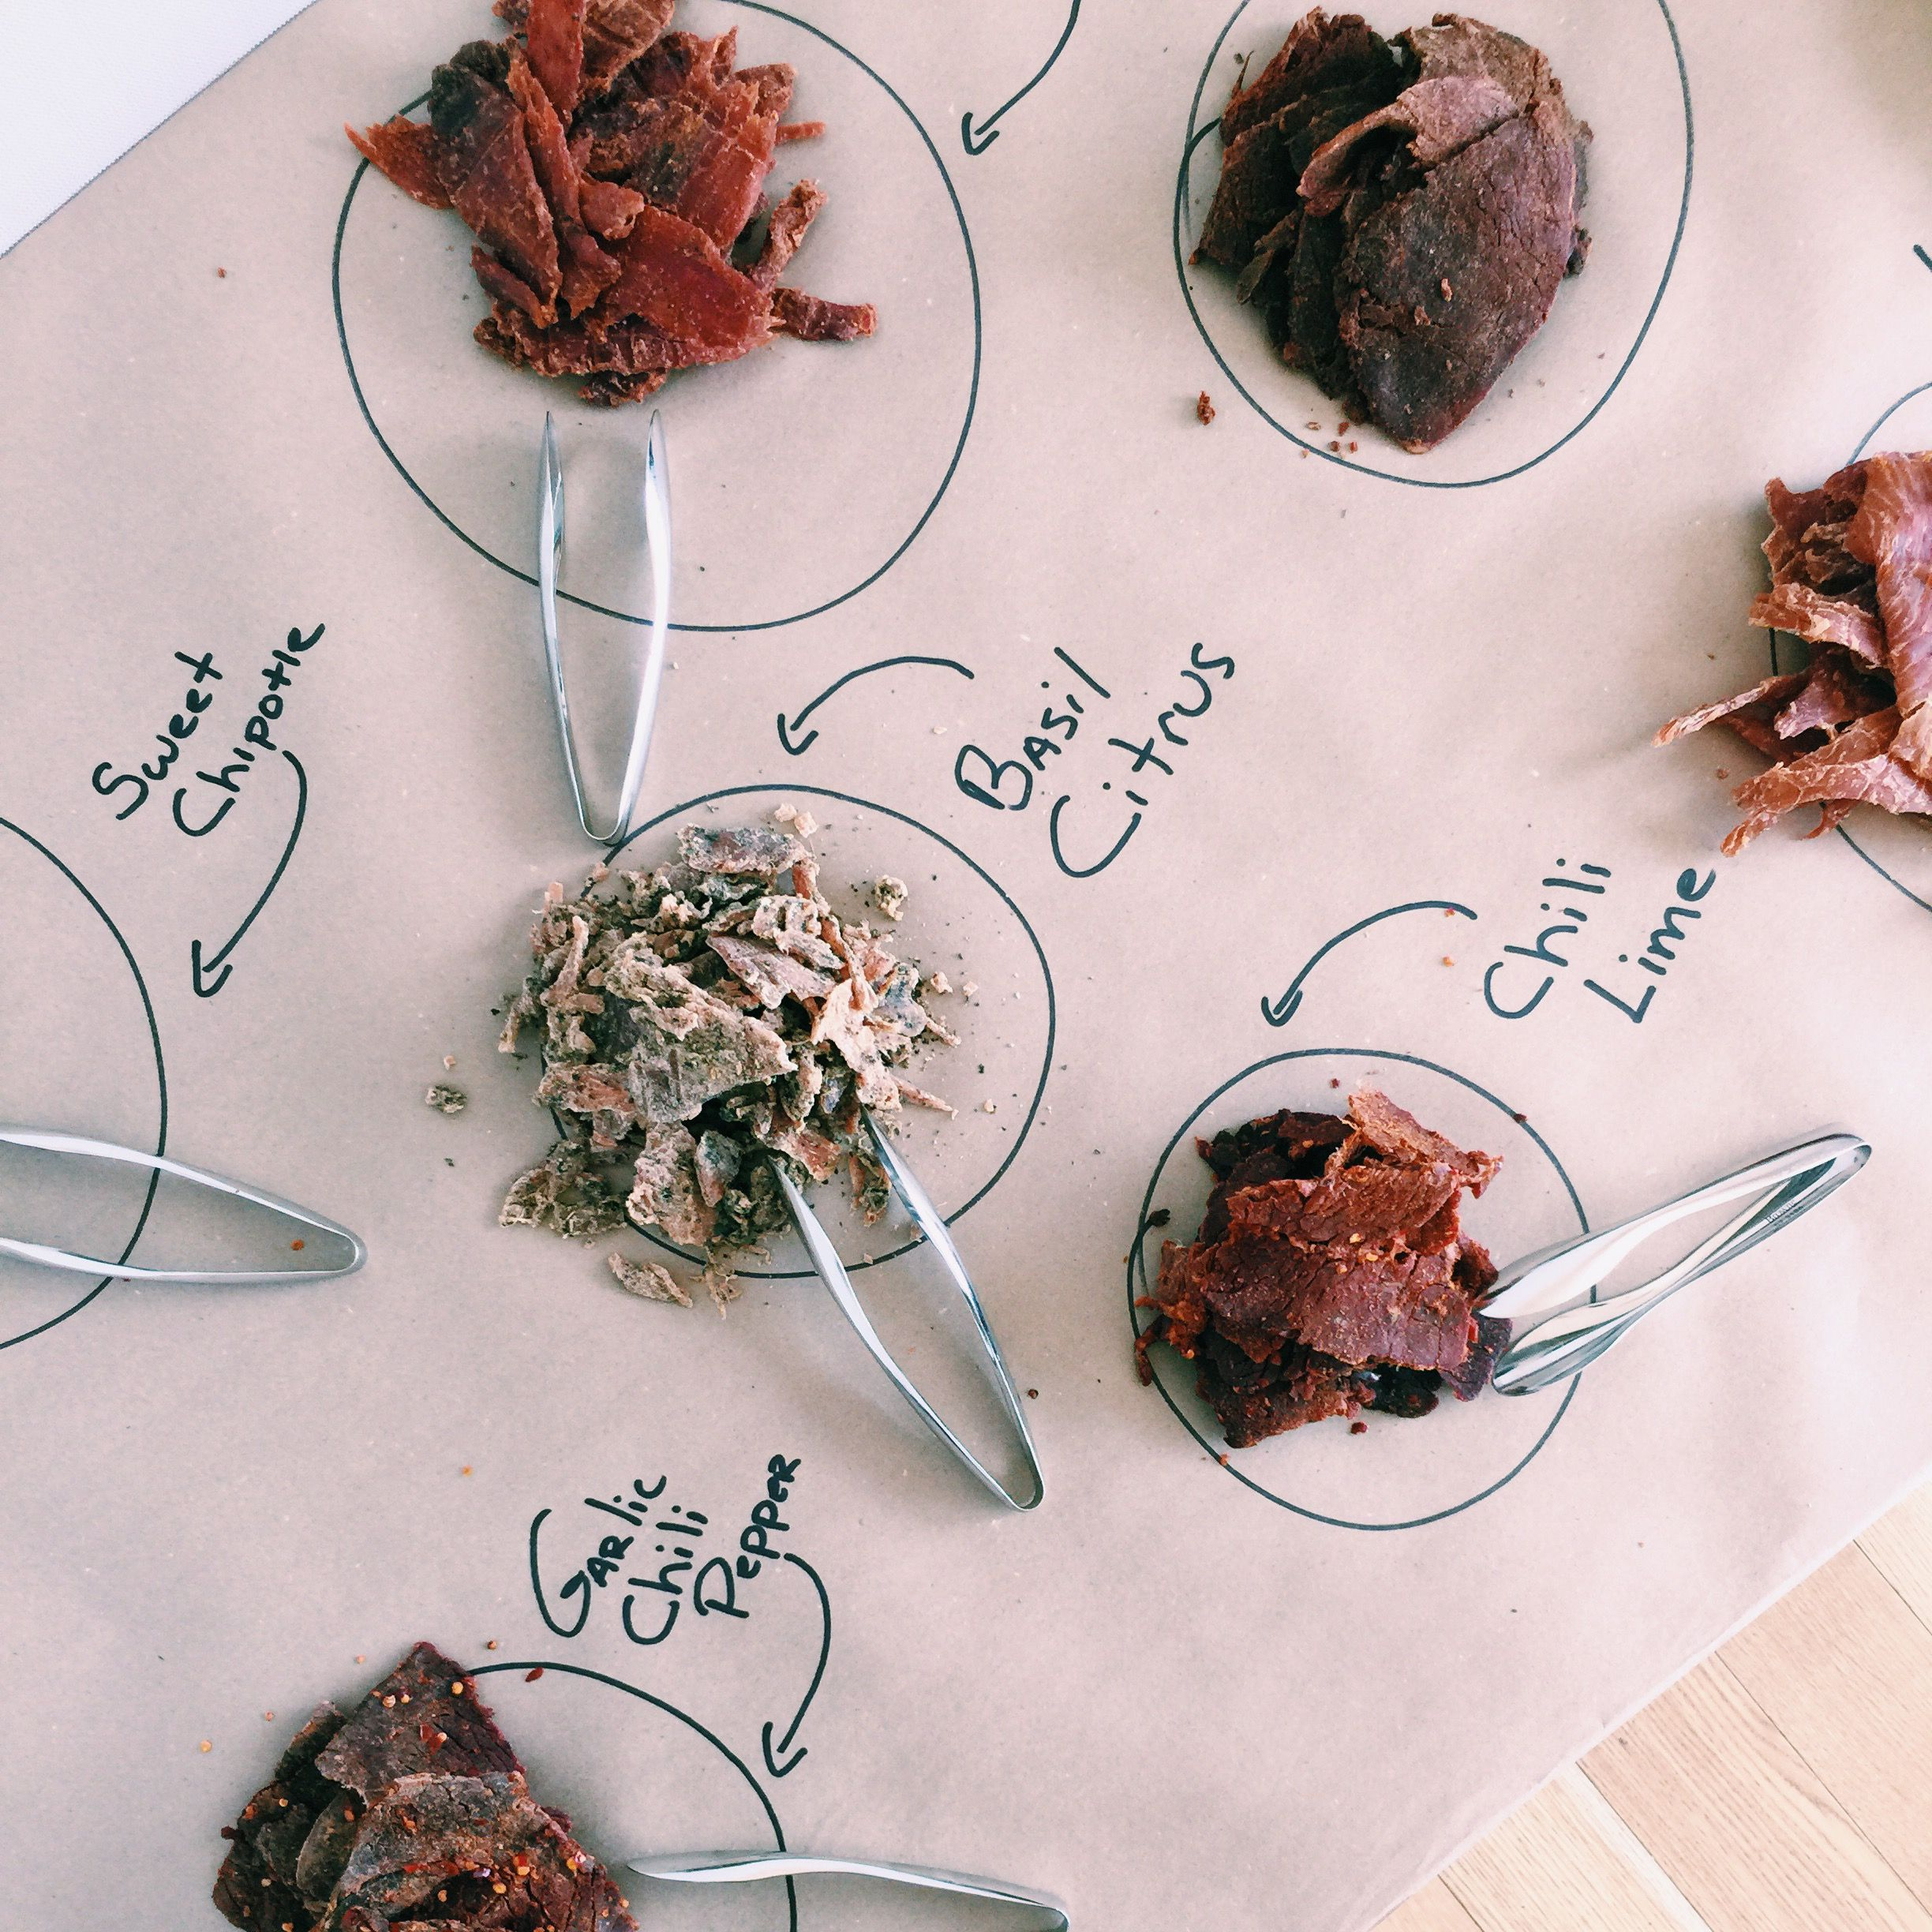 At #GrandHyattSF, we always find creative and fun ways to display our food. Lay out a large piece of parchment paper and put different appetizers on it.  Hand write the name of each dish with black marker.  Try it for your next house party this summer!